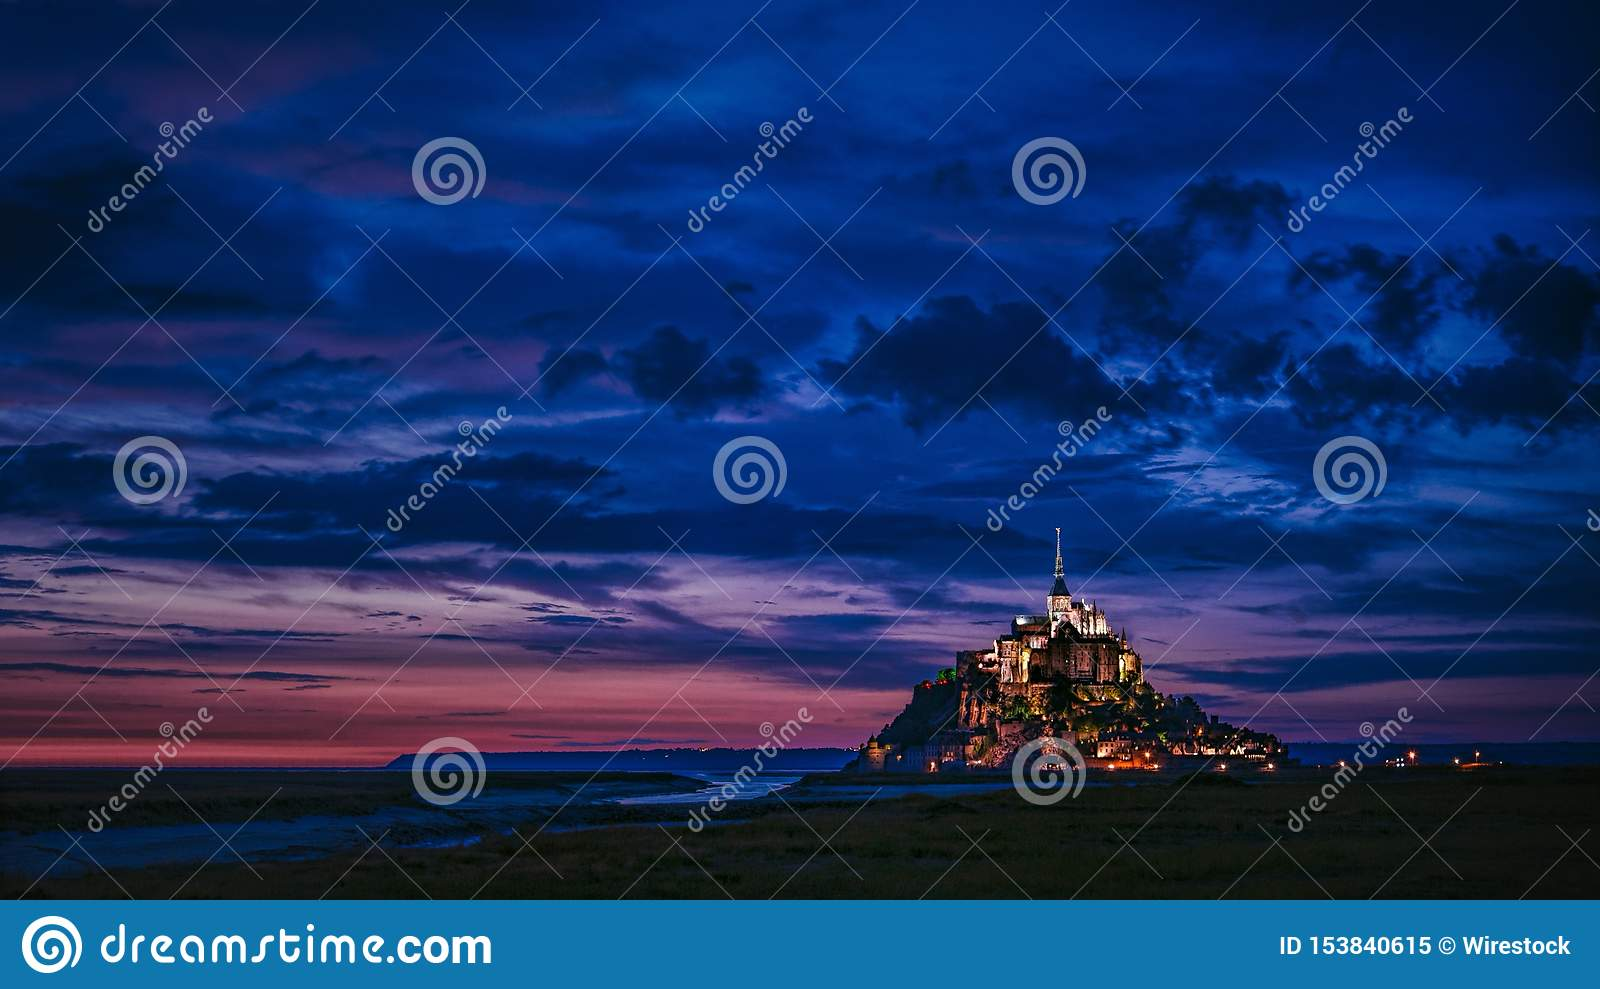 Wide shot of an illuminated castle in the distance with amazing blue clouds in the sky